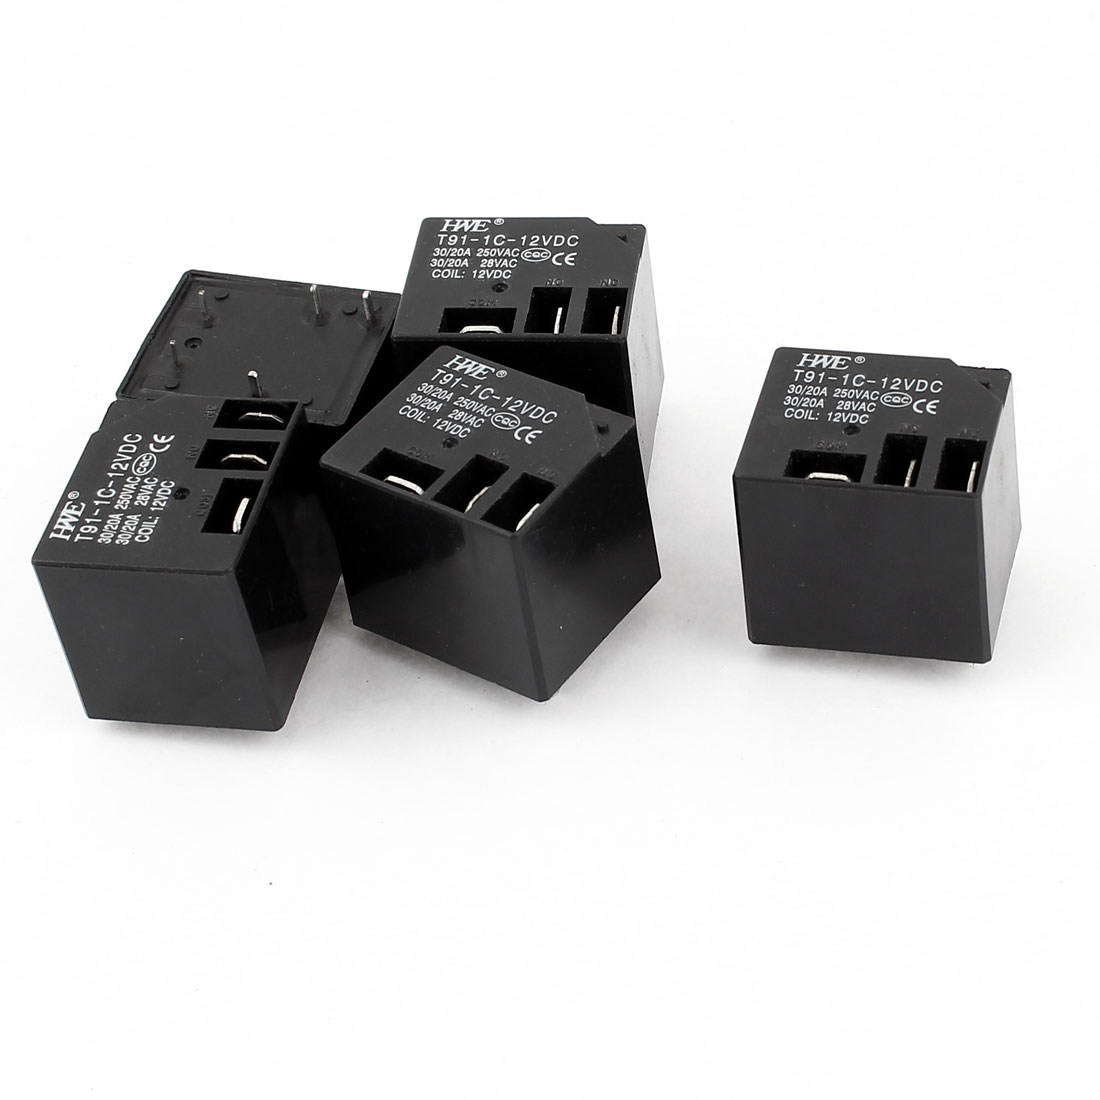 T91-1C-12VDC PCB Mount 5pin Electric Power Relay Black DC 12V Coil Voltage 5 Pcs